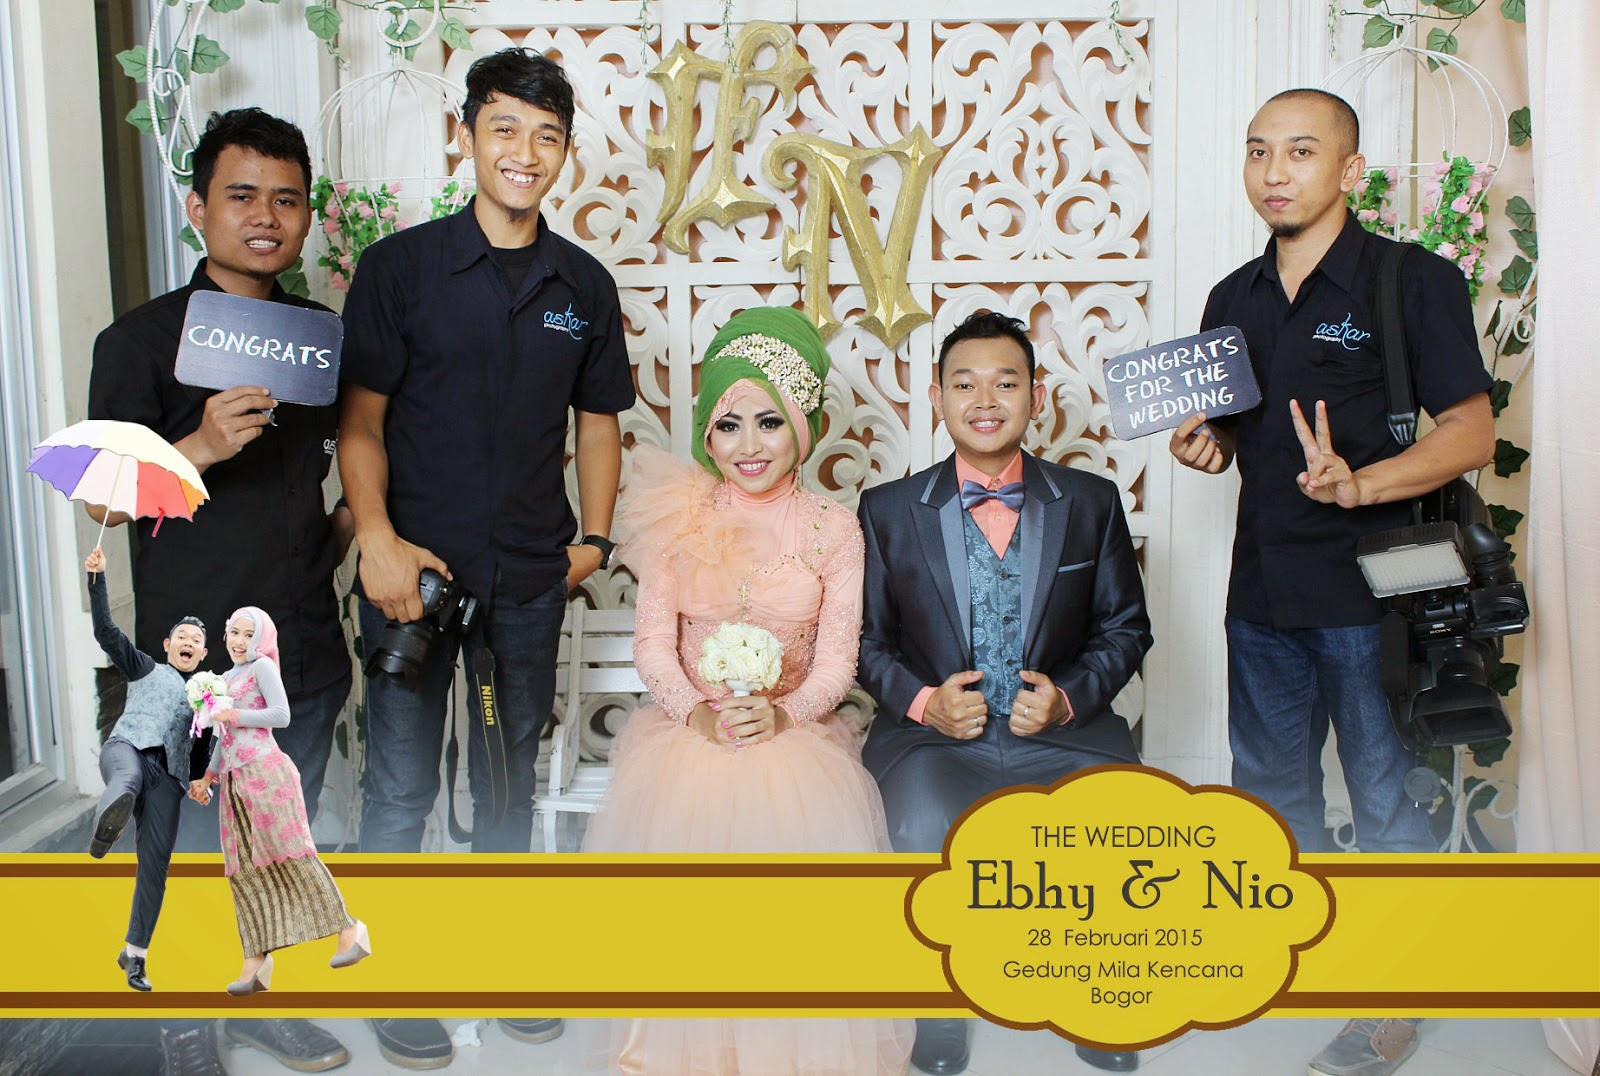 photobooth green sreen, Paket photobooth murah unlimited, photobooth depok, photobooth jakarta